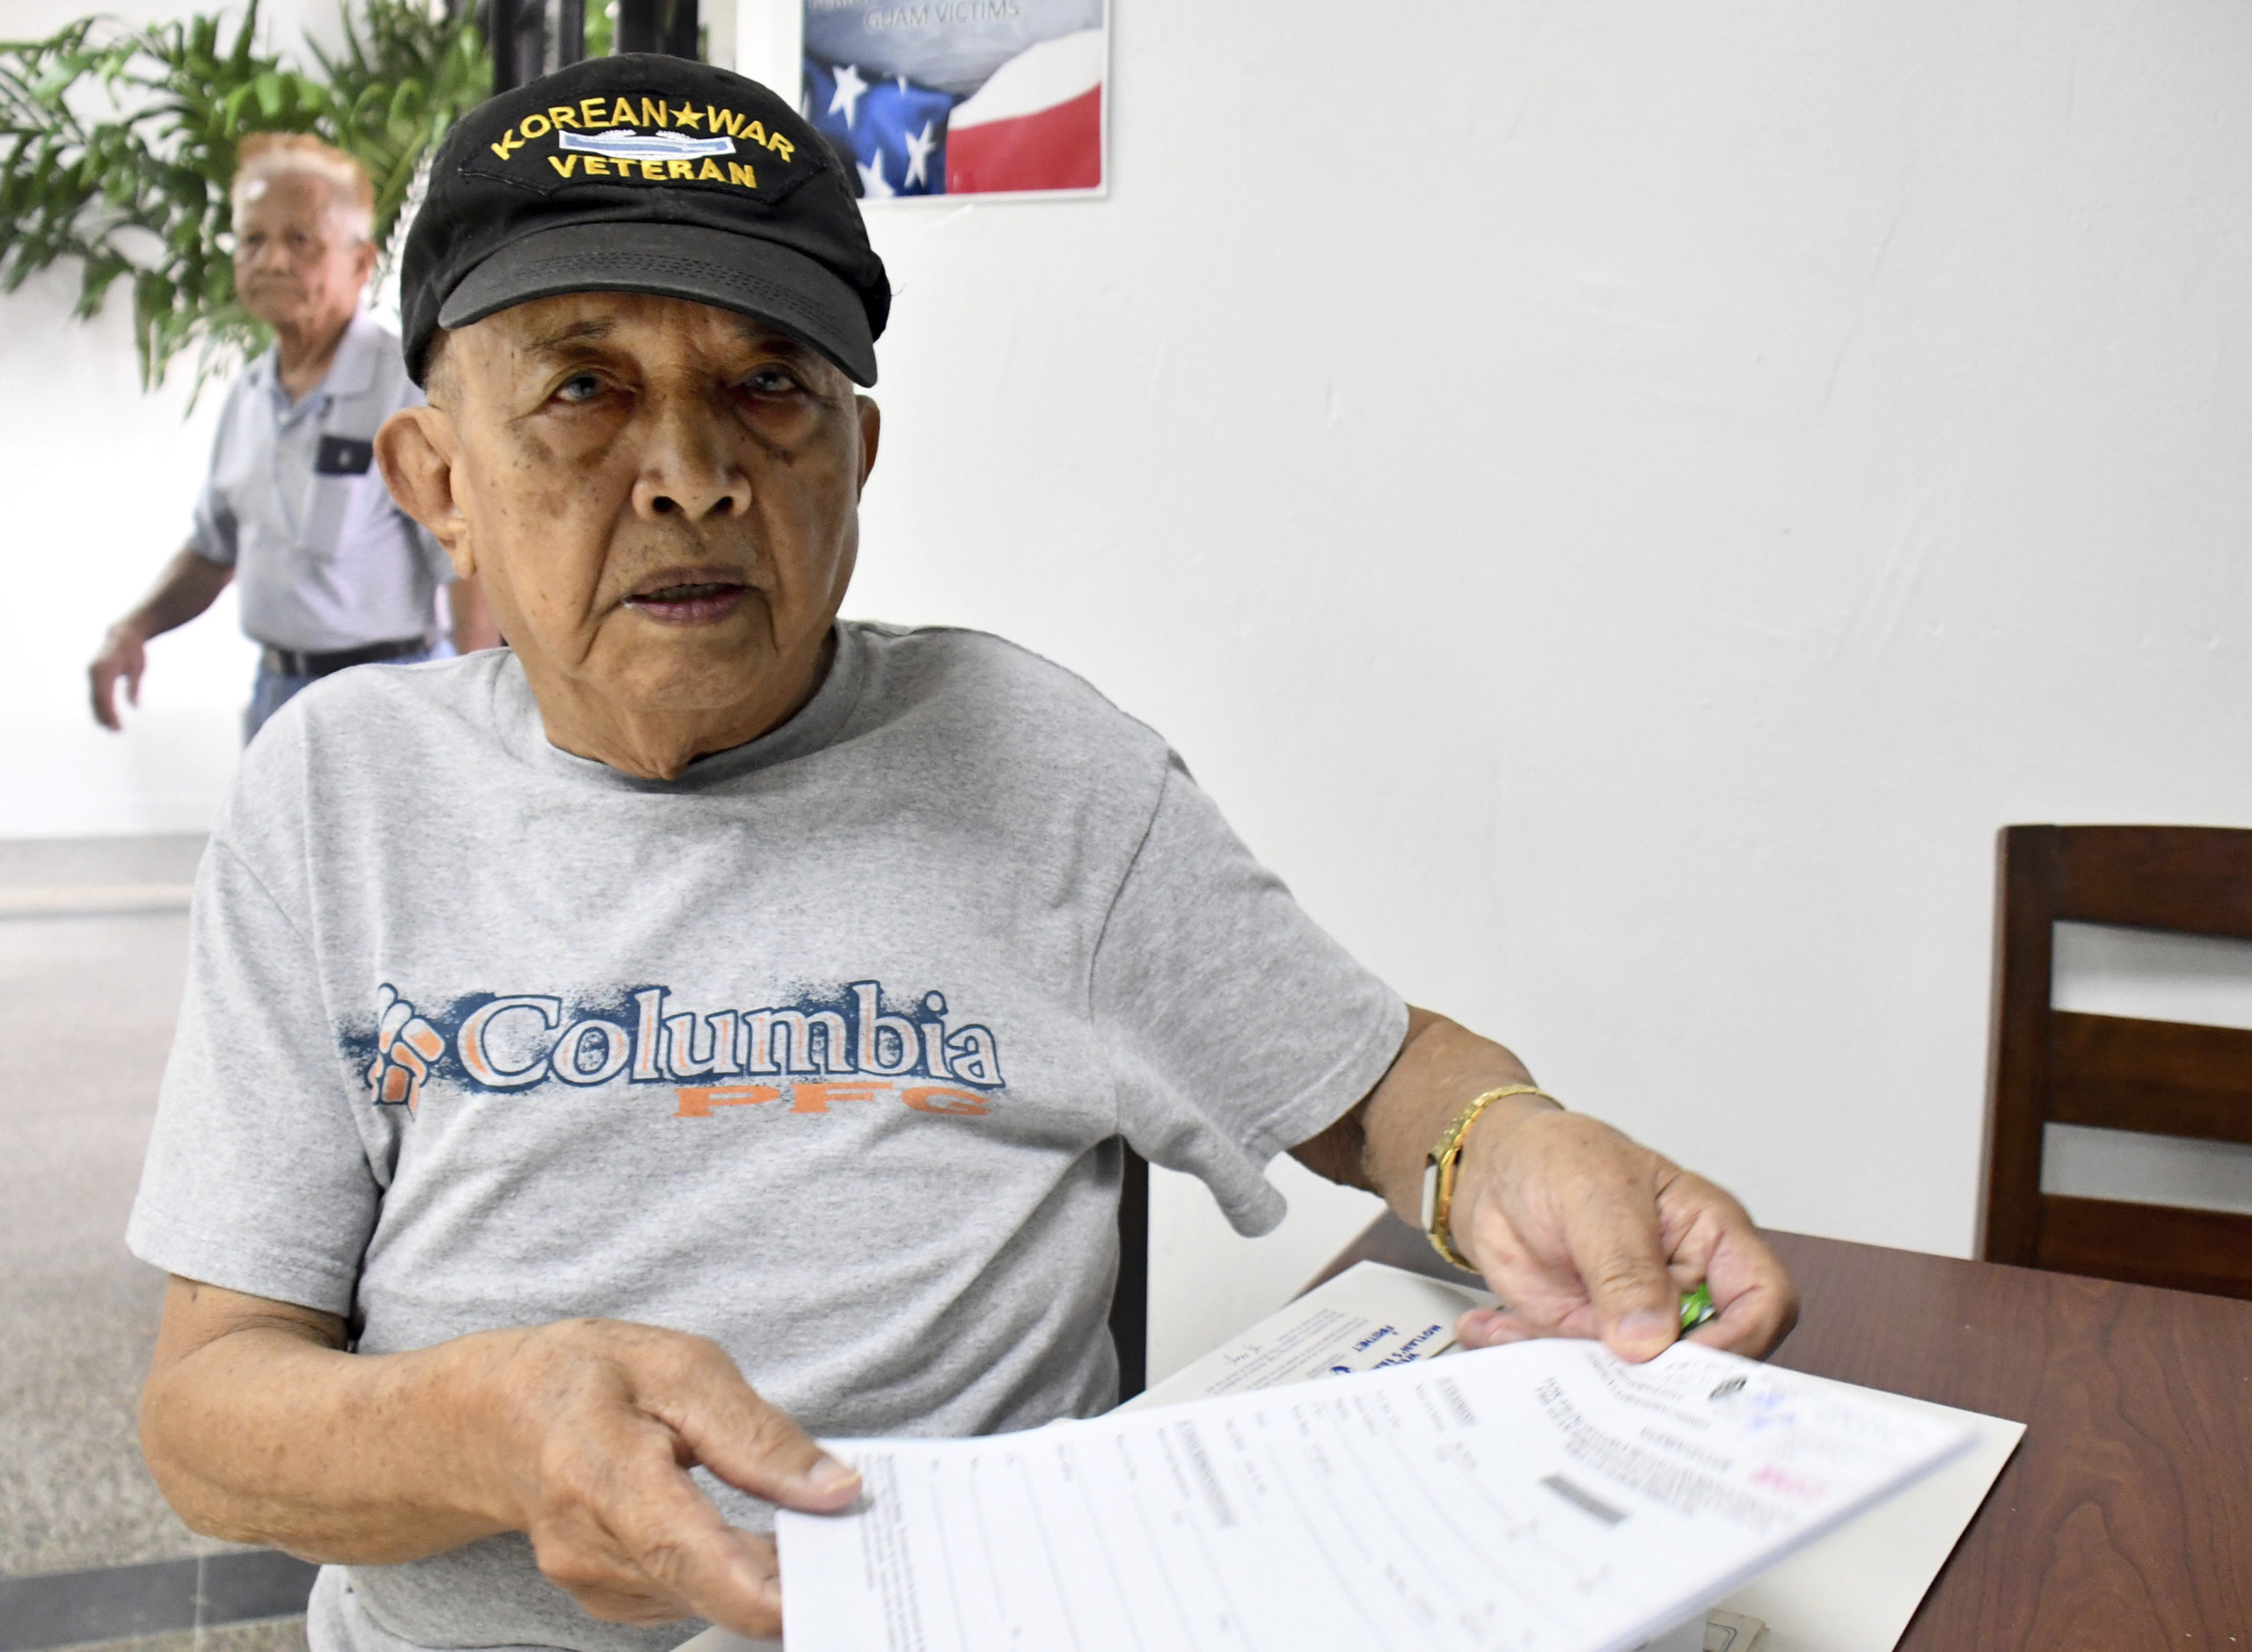 In this Friday, Feb. 7, 2020 photo, Jesus San Nicolas, 86, sits at the Guam war claims office in Tamuning, Guam. The 1941 Japanese invasion of Guam, which happened on the same December day as the attack on Hawaii's Pearl Harbor, set off years of forced labor, internment, torture, rape and beheadings. Now, more than 75 years later, thousands of people on Guam, a U.S. territory, are expecting to get long-awaited compensation for their suffering at the hands of imperial Japan during World War II. (AP Photo/Anita Hofschneider)